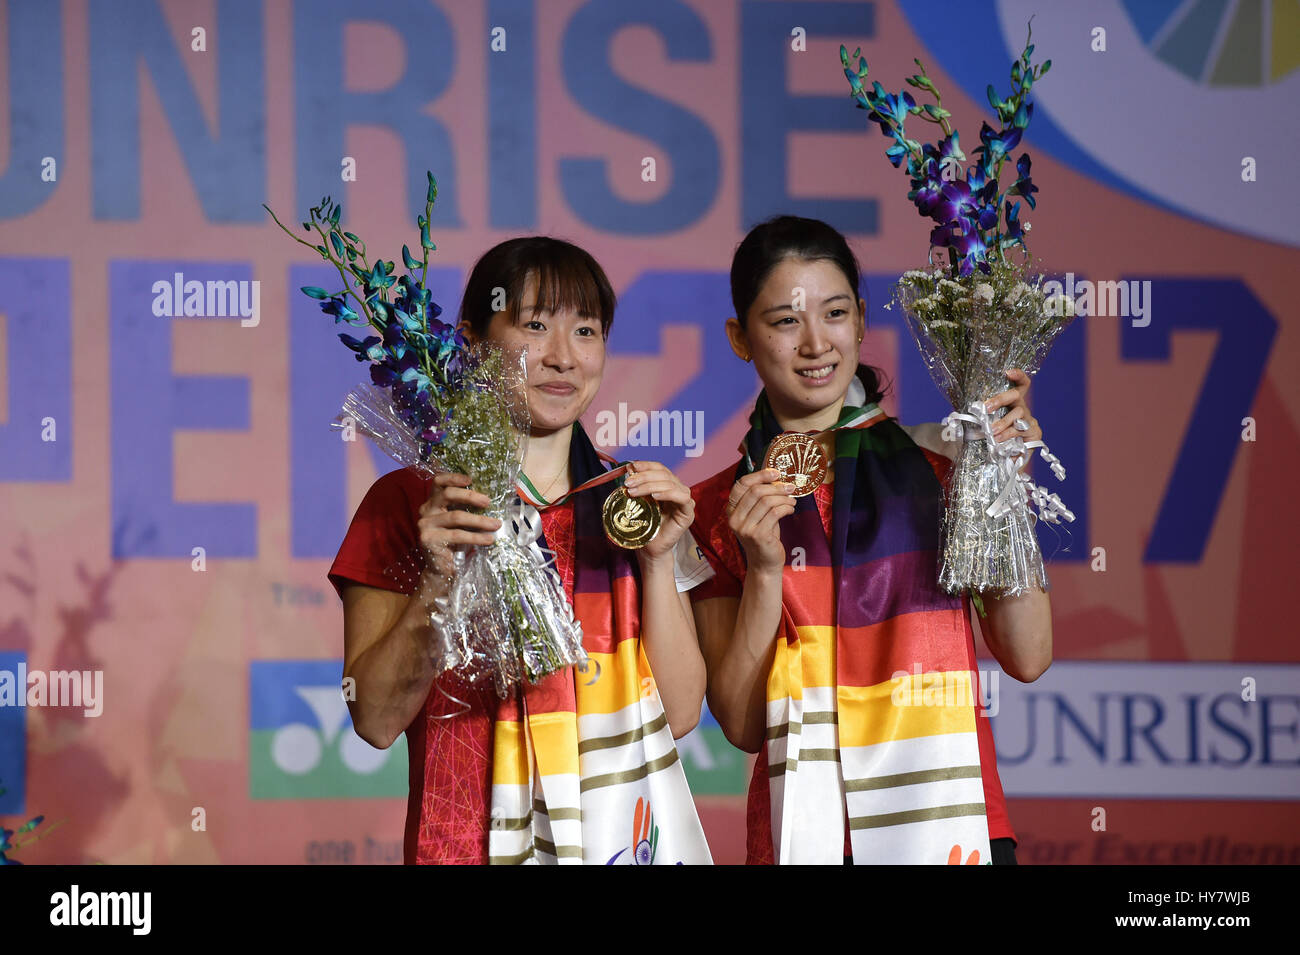 NEW DELHI April 2 2017 Xinhua Shiho Tanaka and